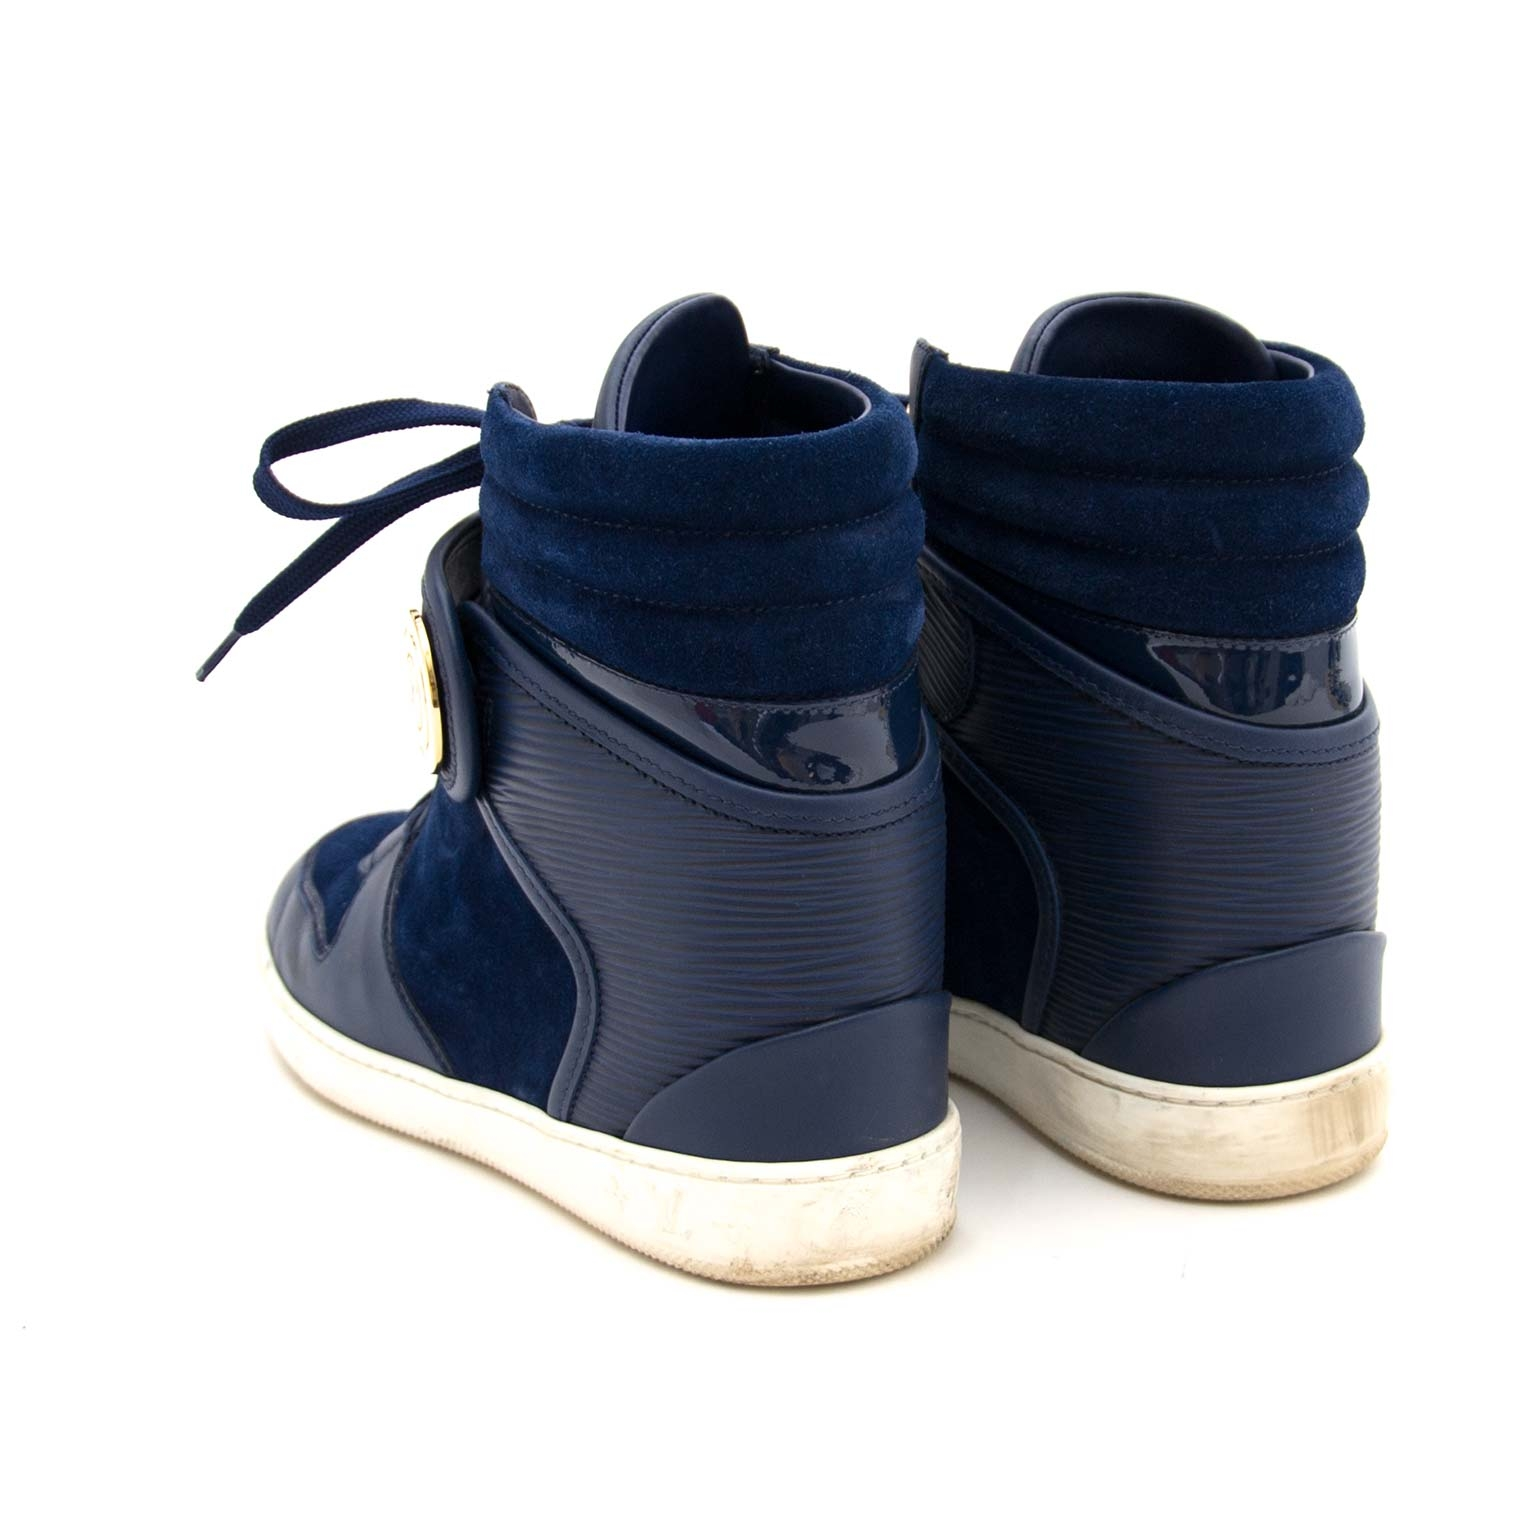 Louis Vuitton Blue Leather and Suede High Top Wedge Sneakers  for sale